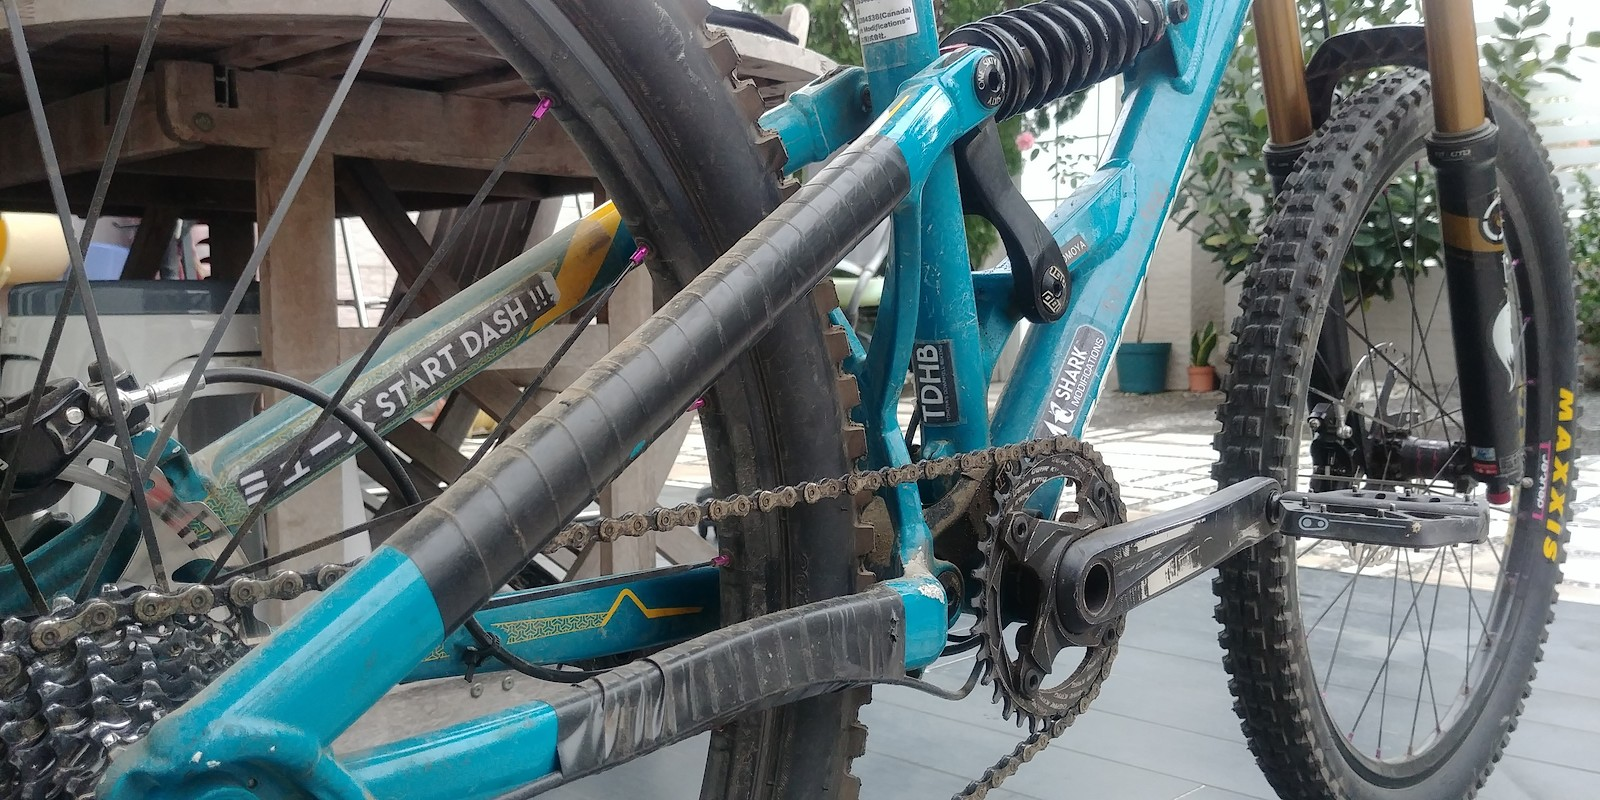 88d9d251736 ... Downhill bike frame Front 160mm travel and Rear 180mm travel 26 inch  wheels with Maxxis minions SRAM Descendant 780mmX35mm Bars Merida VPK  Suspension ...